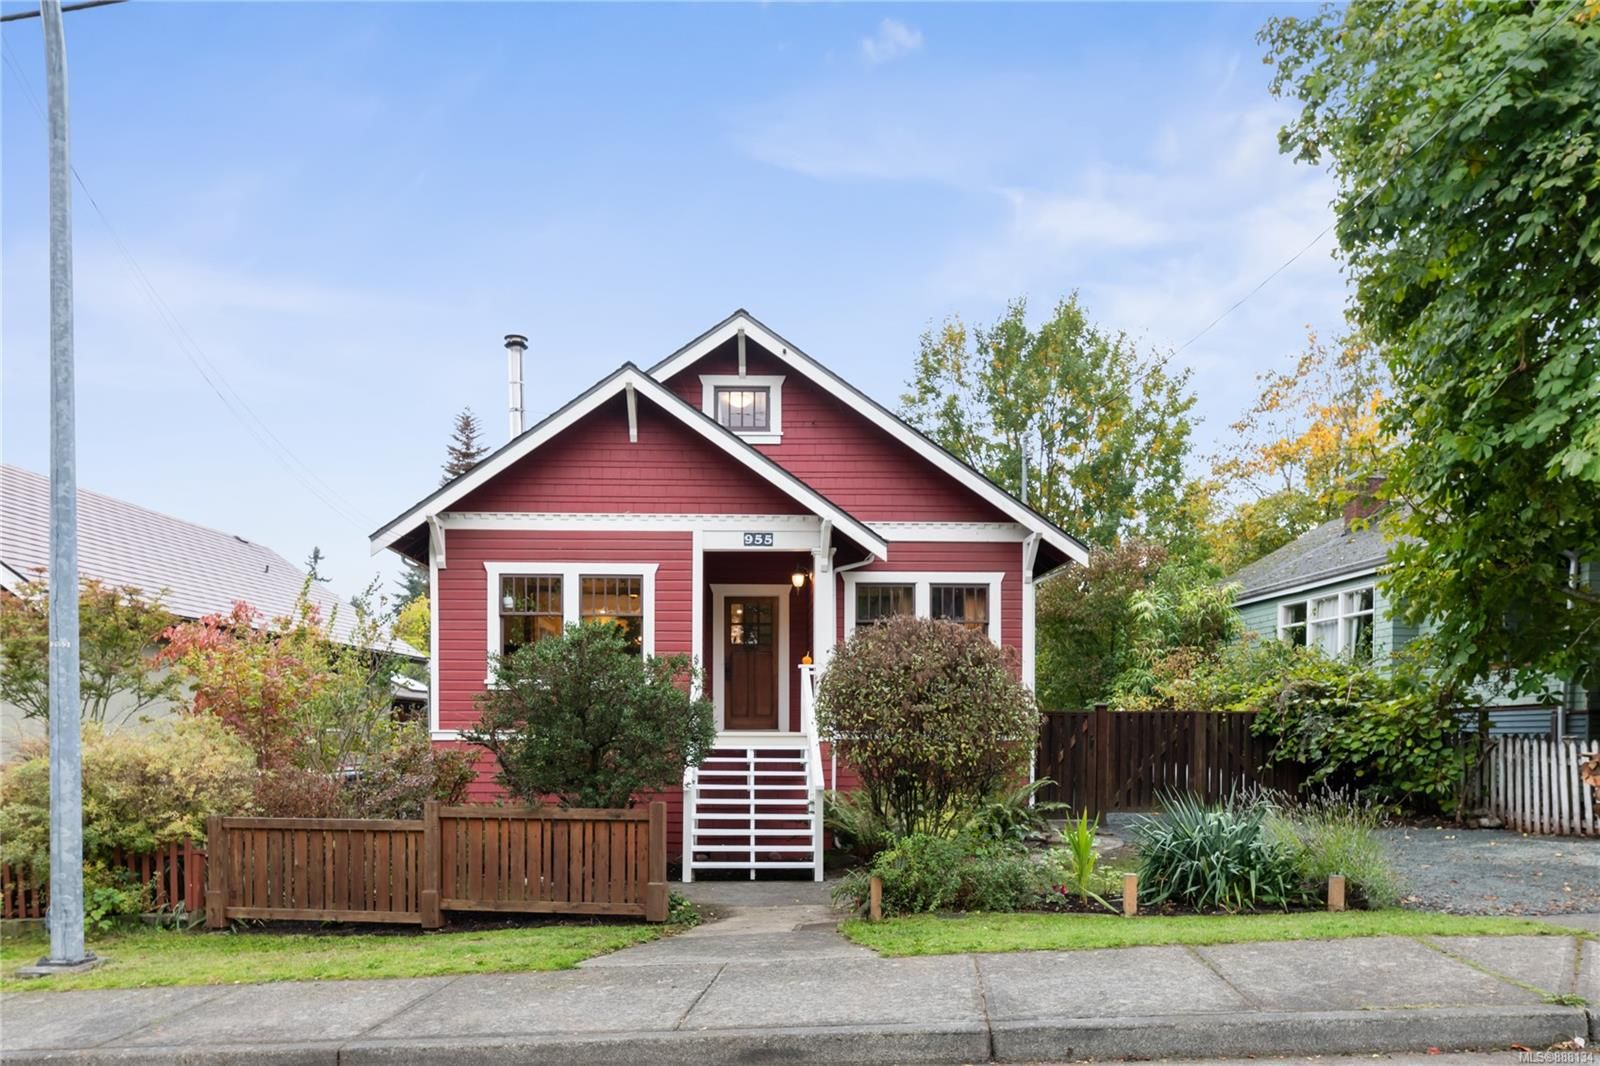 Main Photo: 955 Comox Rd in : Na Old City House for sale (Nanaimo)  : MLS®# 888134